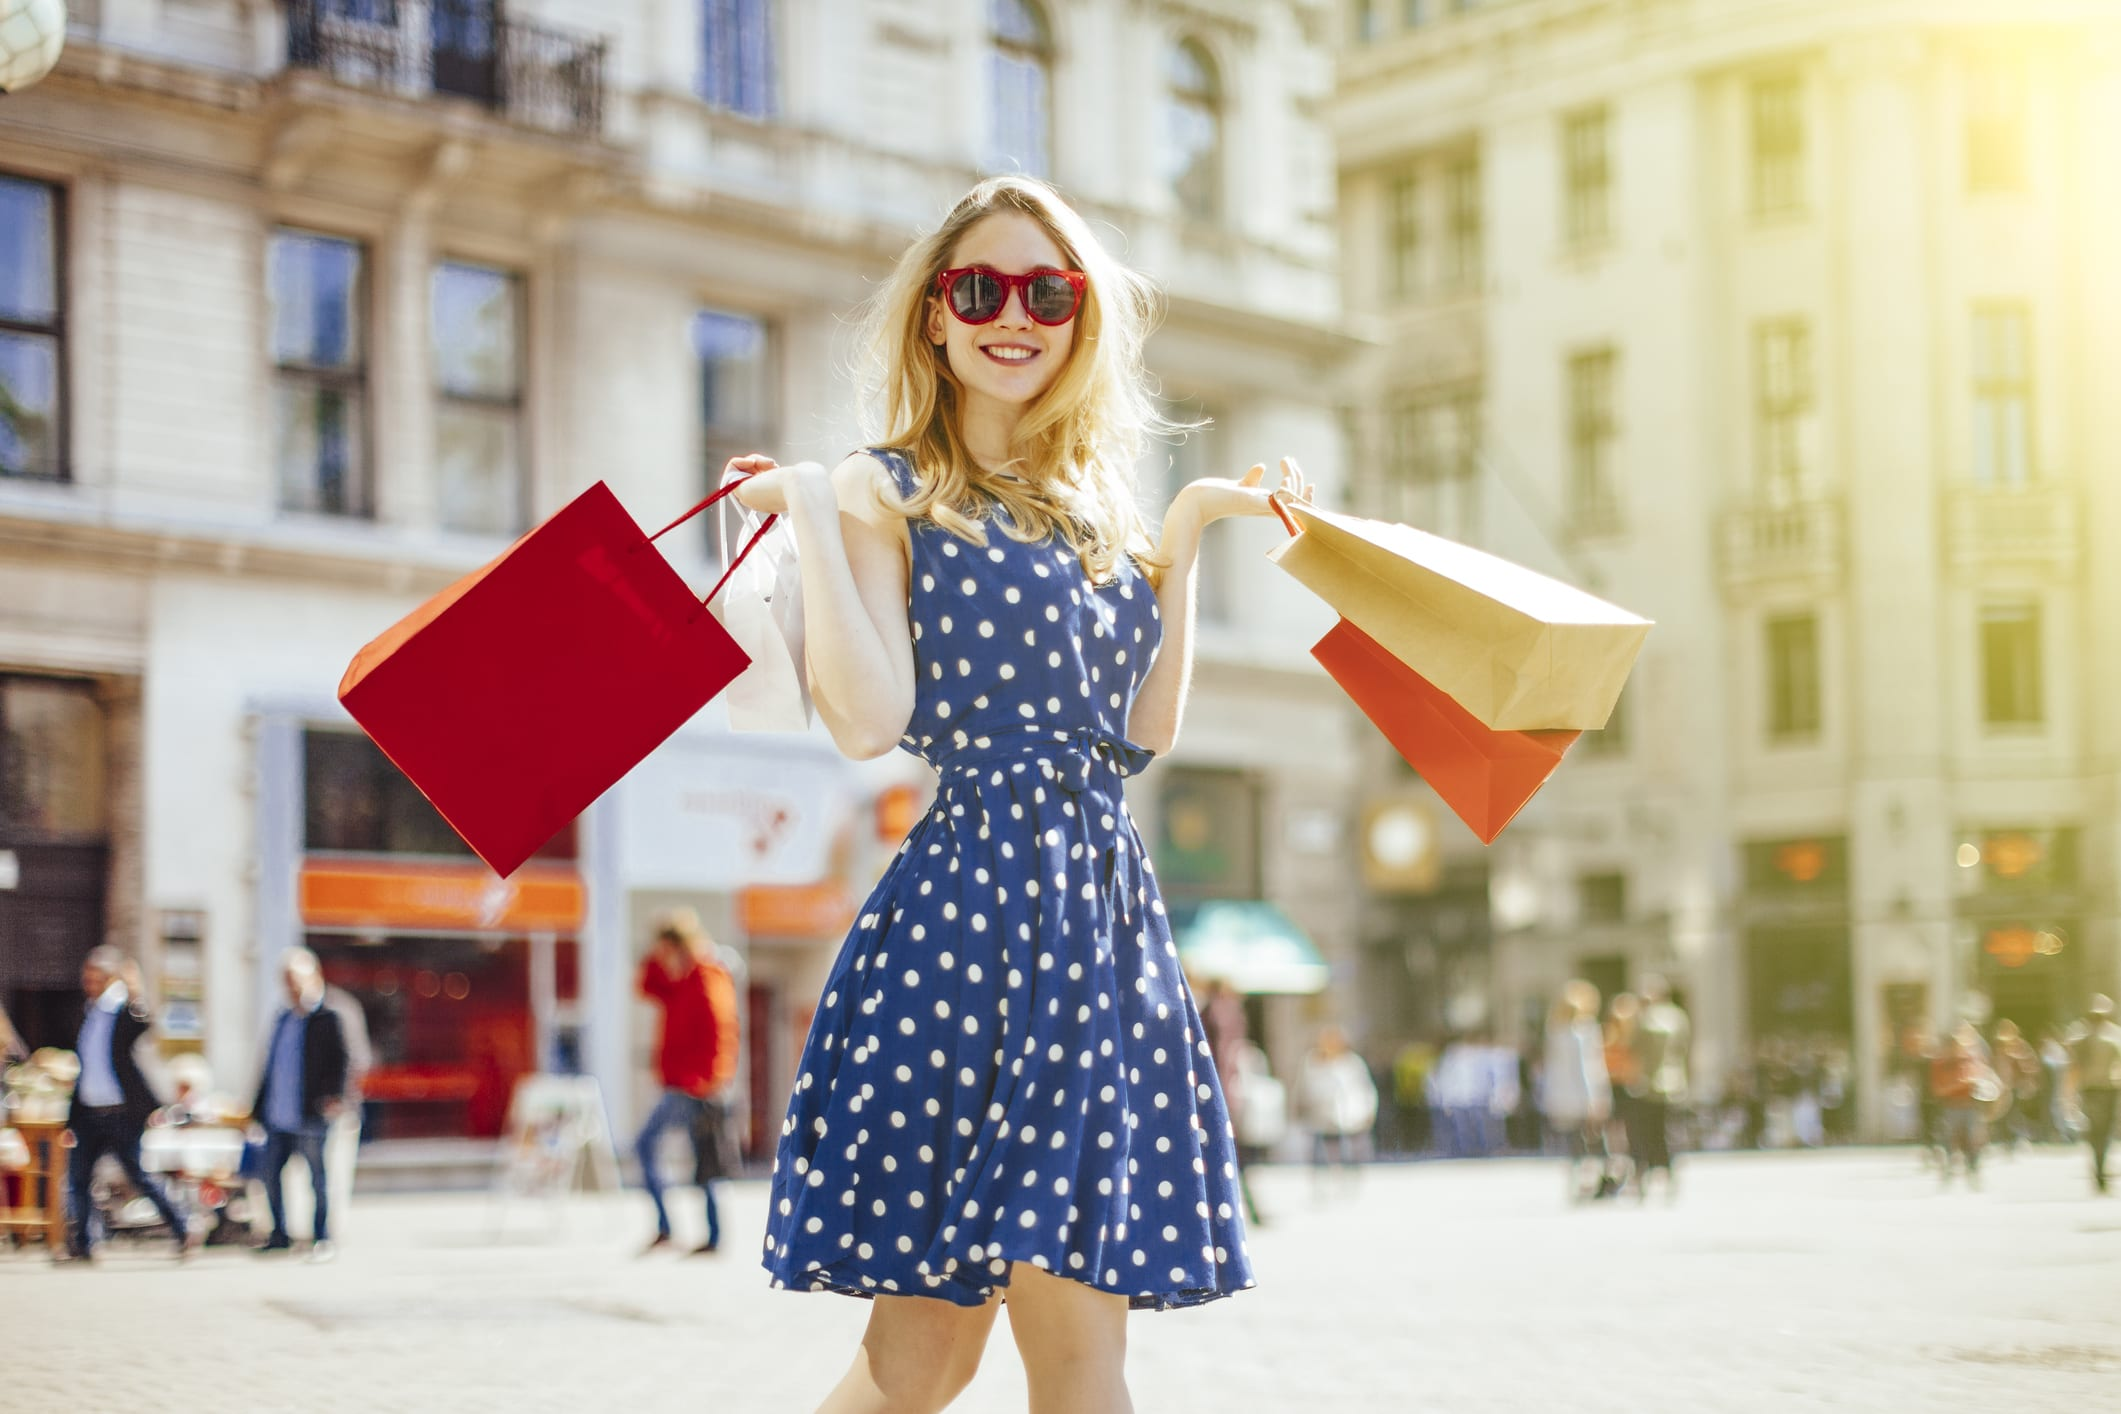 woman holding shopping bags outside